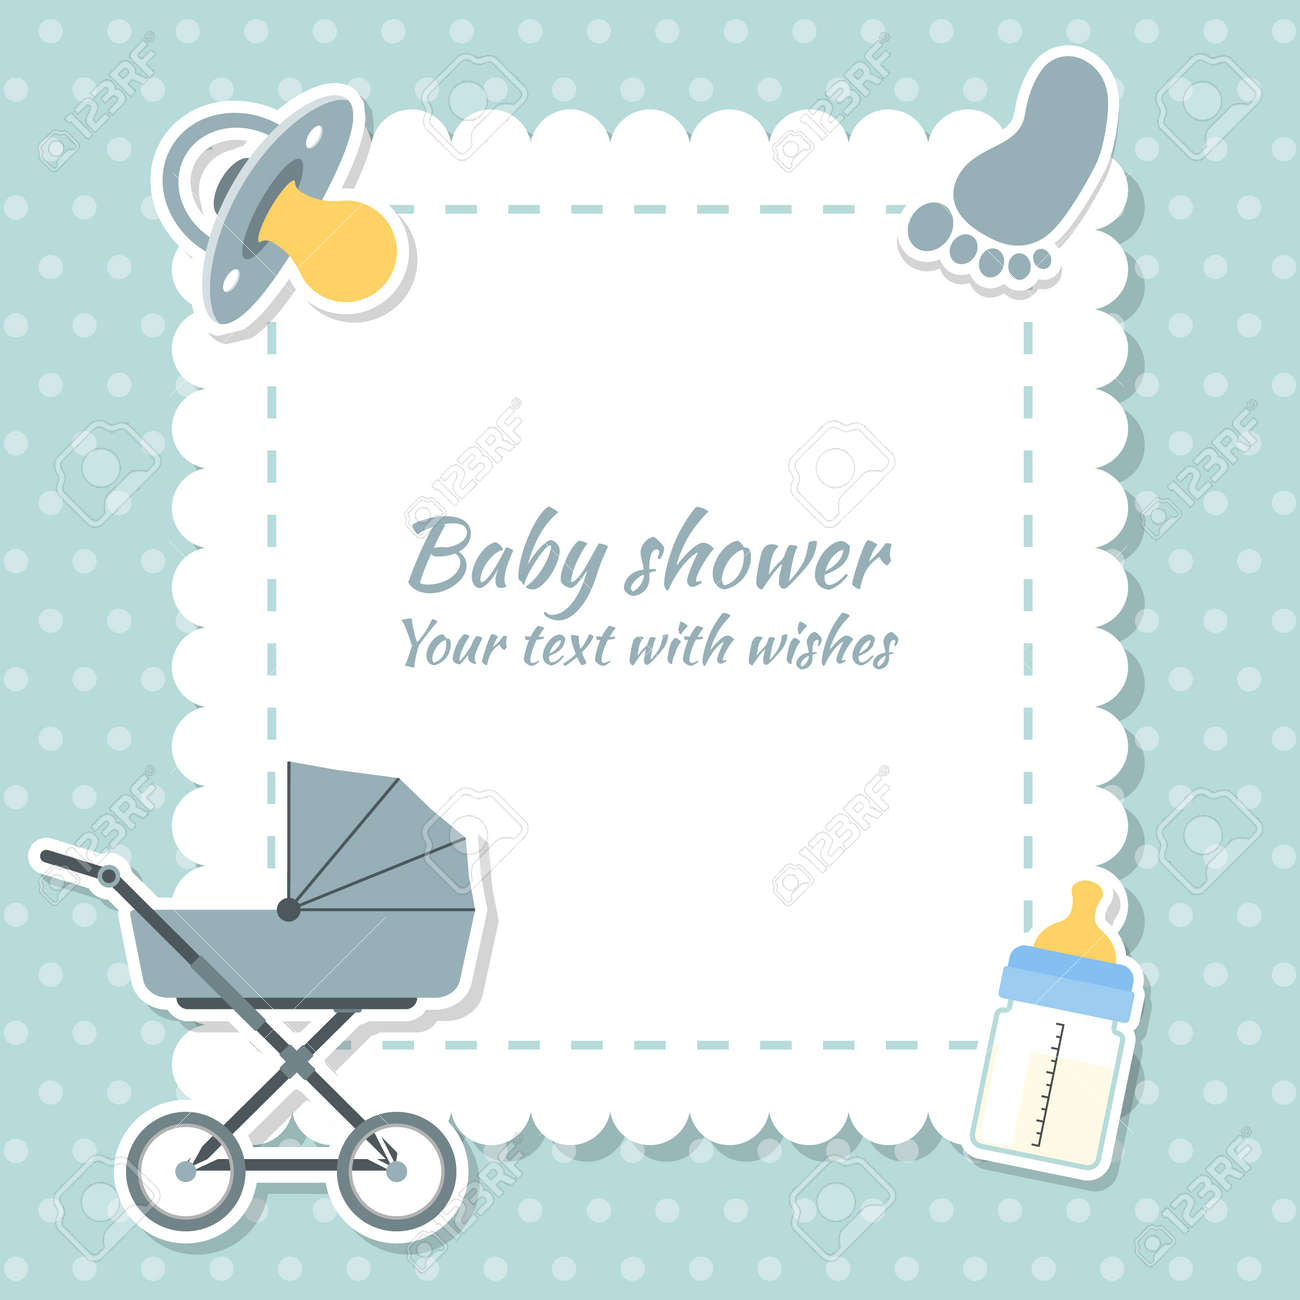 Baby shower boy invitation card place for text greeting cards baby shower boy invitation card place for text greeting cards stock vector kristyandbryce Image collections